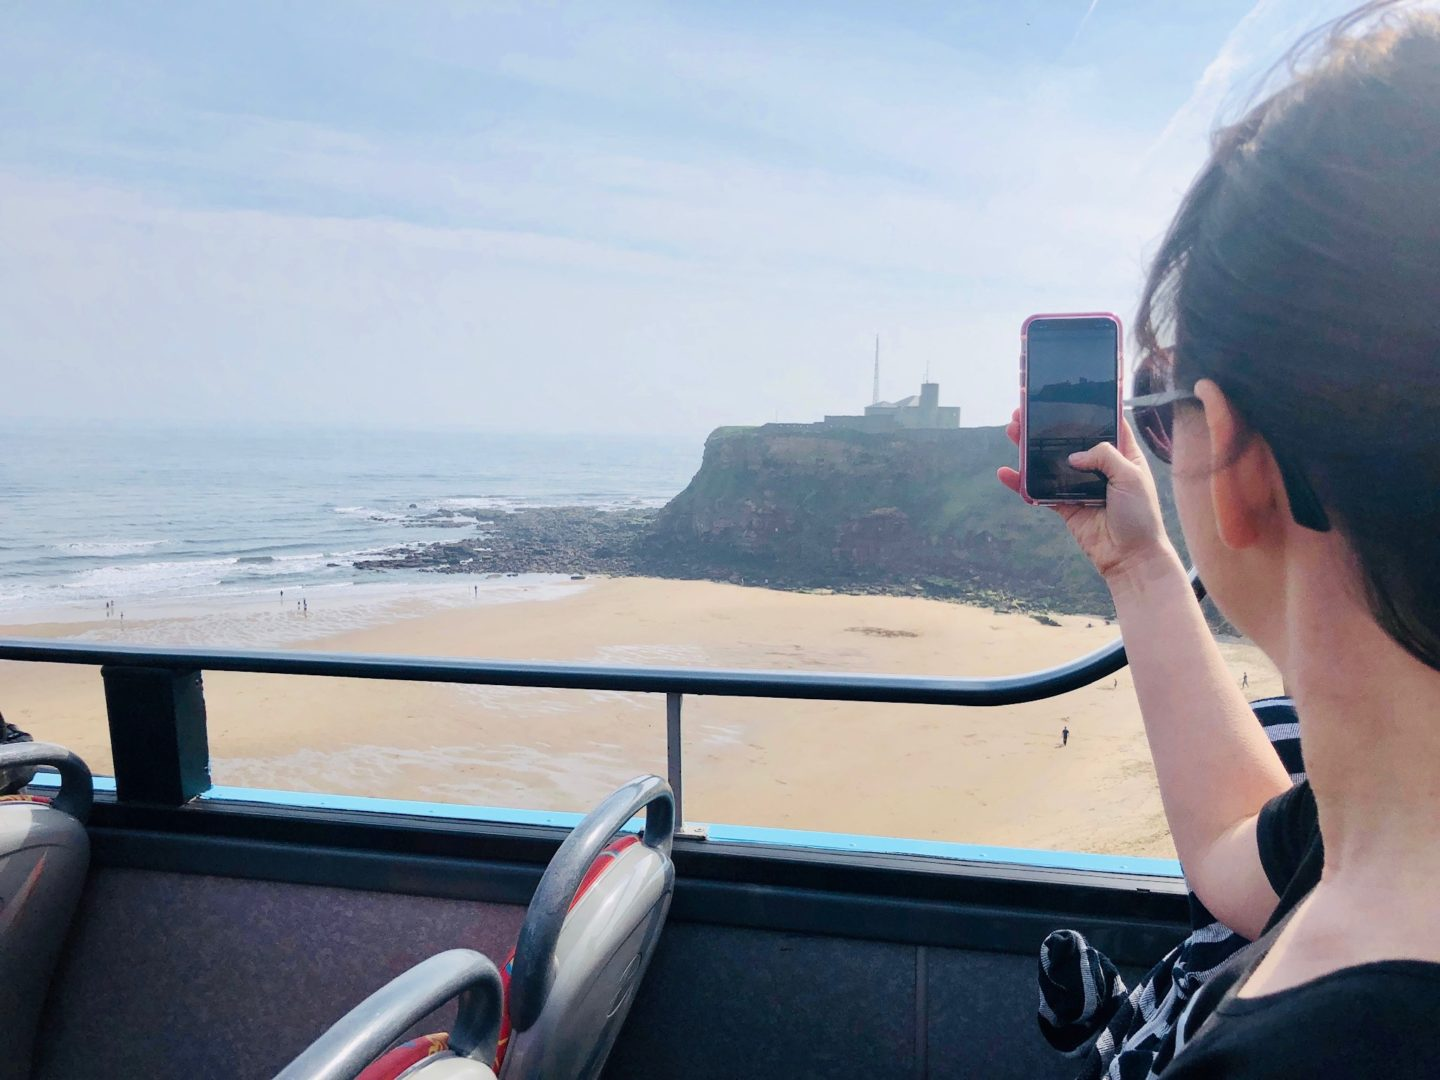 AD: A day out at Whitley Bay with Stagecoach's the Seasider open top bus service